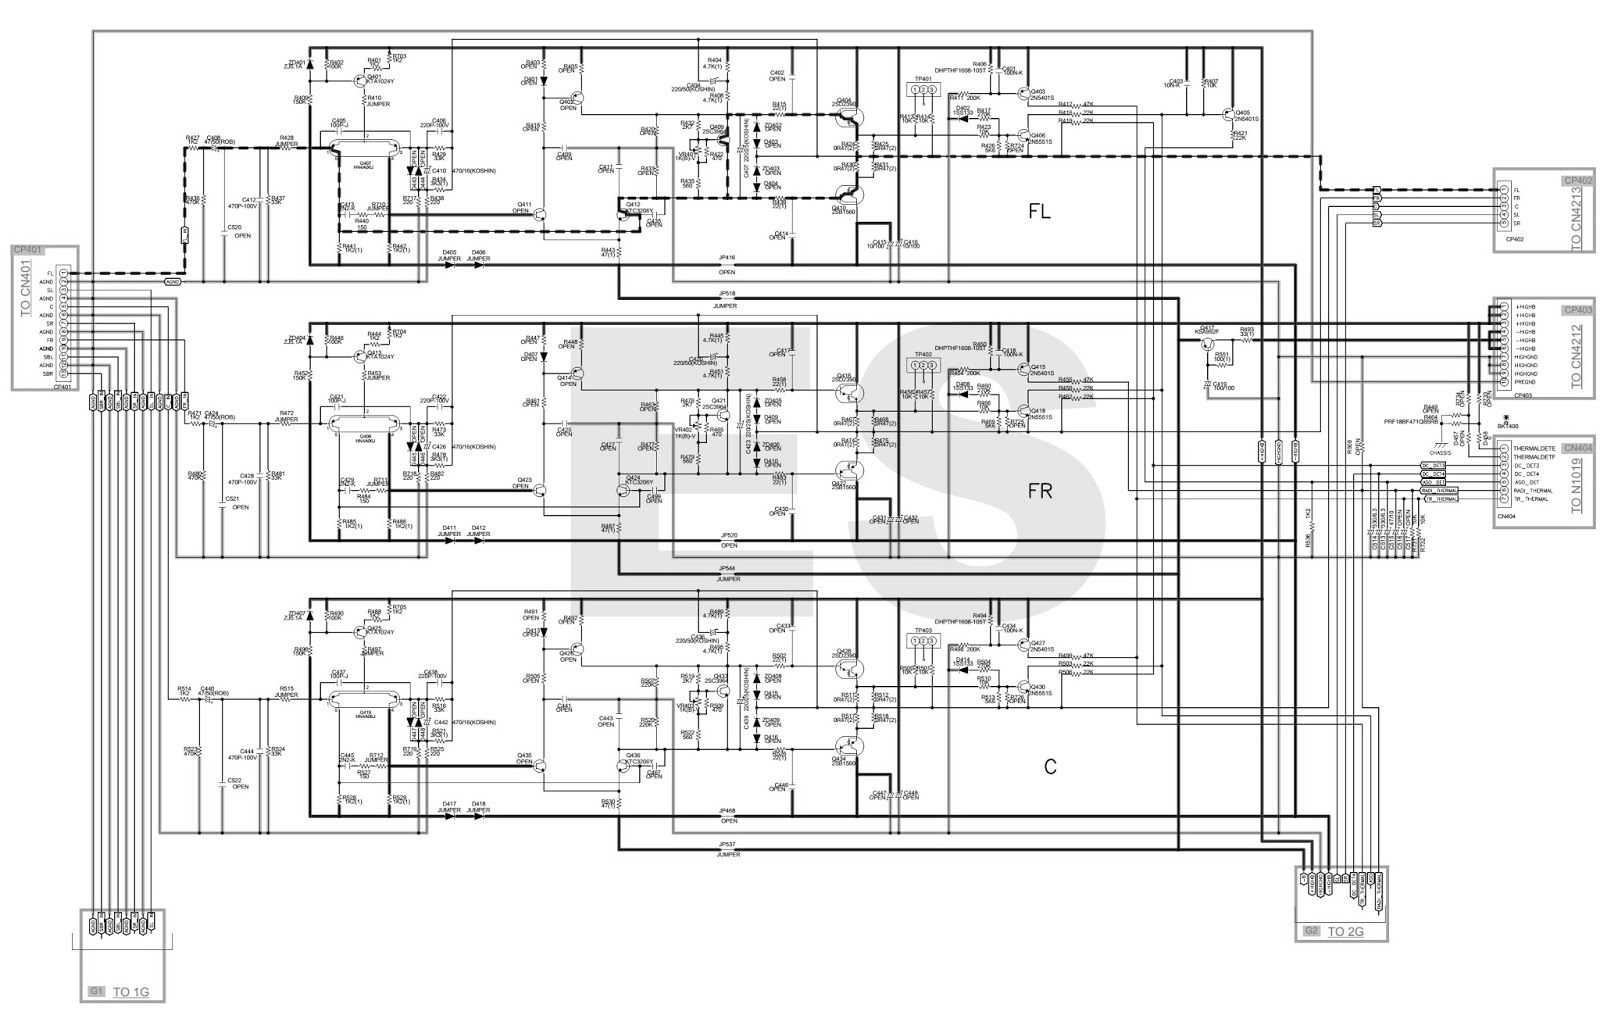 Denon Surround Sound Wiring Diagram